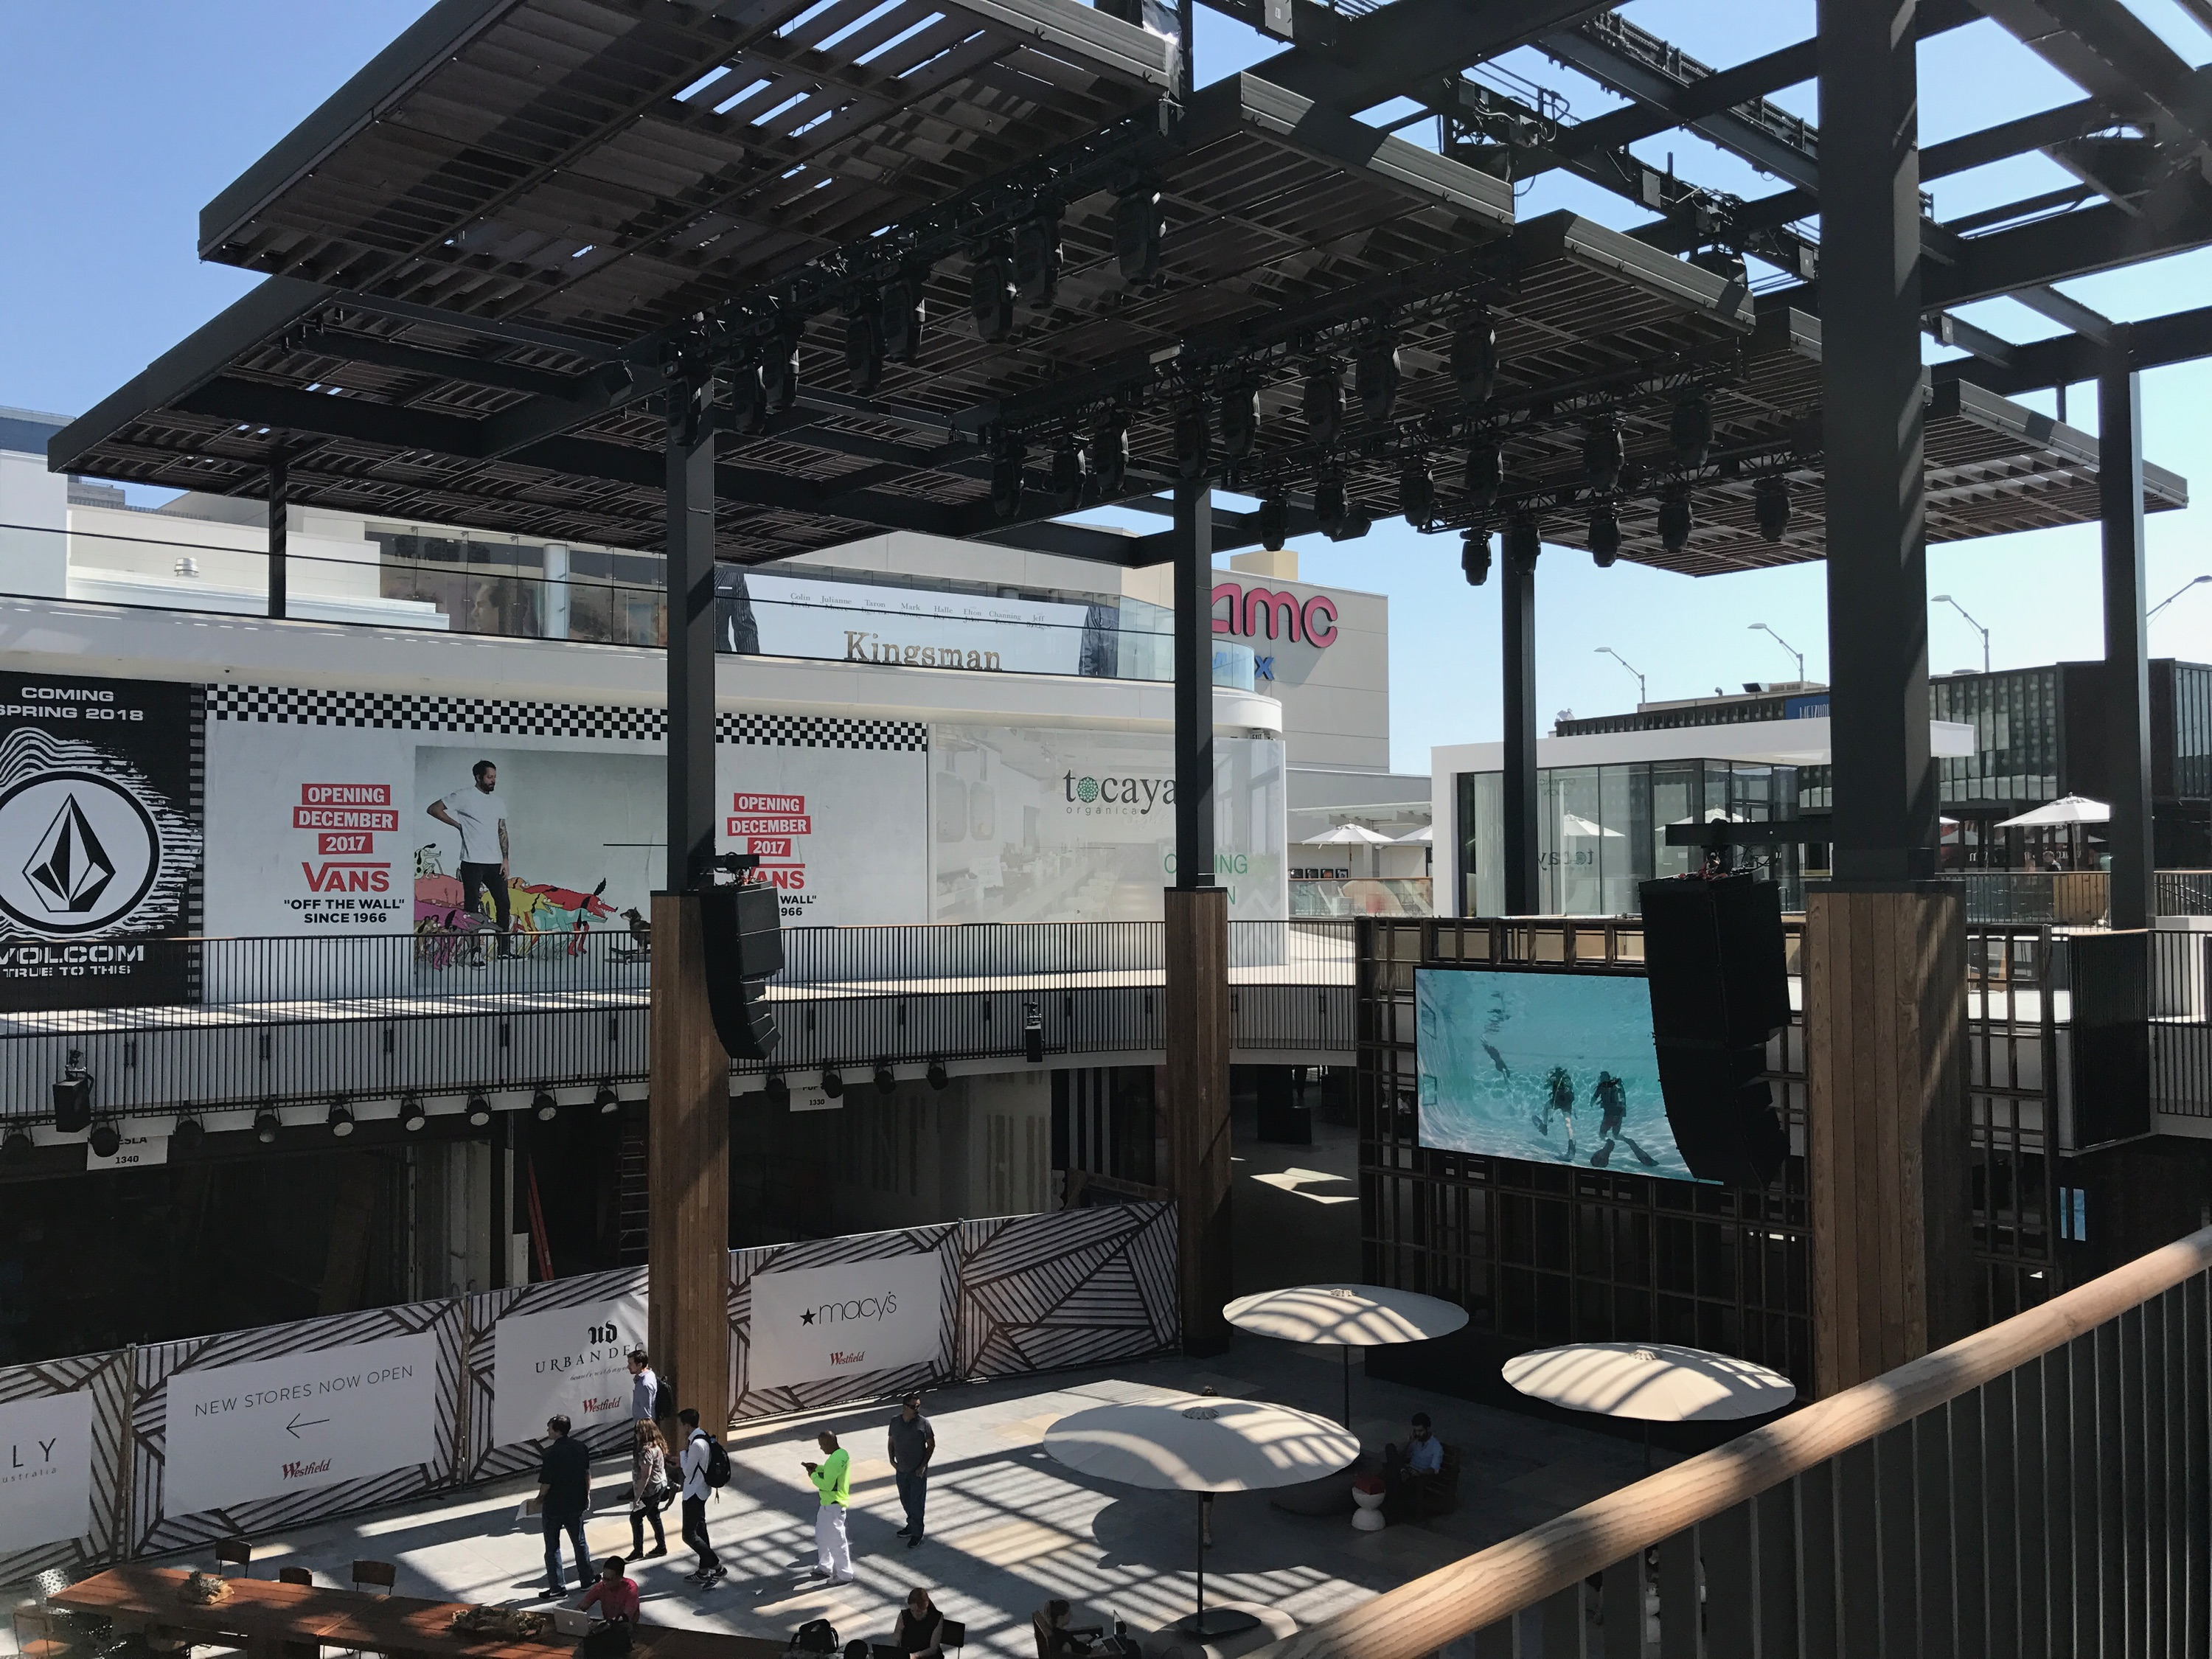 The biggest addition is the courtyard in the center of the mall. It includes a giant LED screen, a professional lighting setup, and tables for lounging.